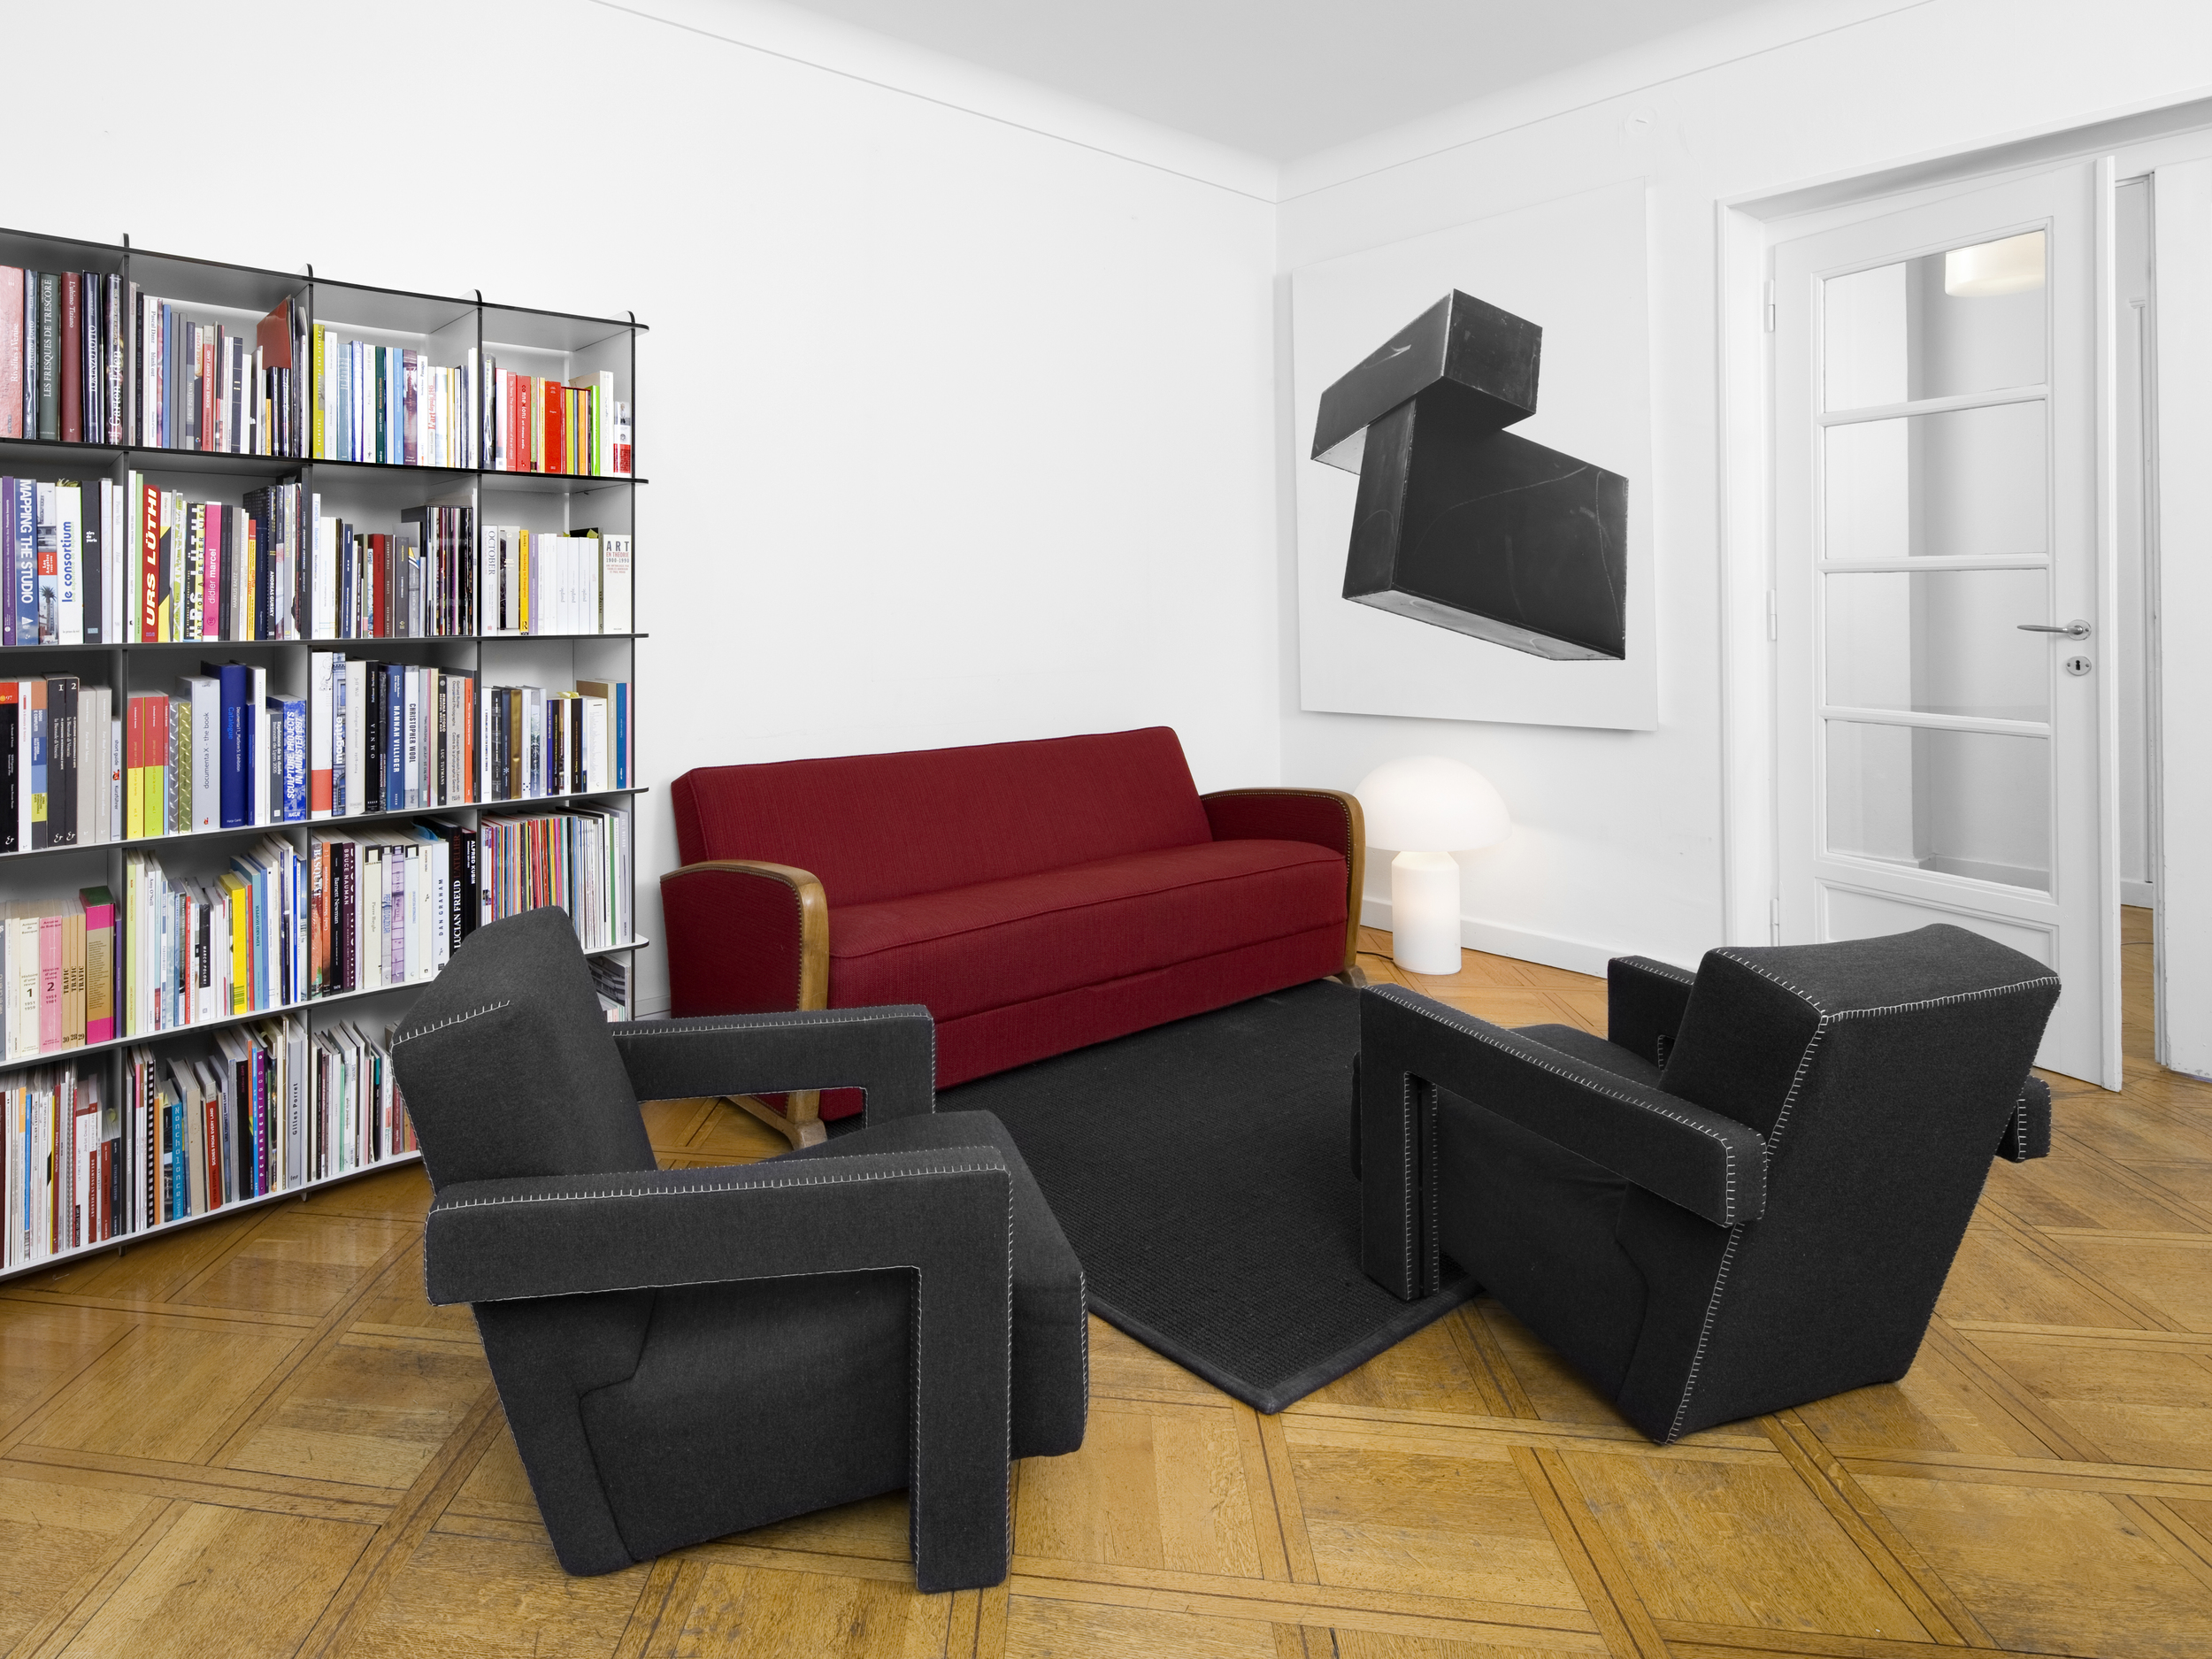 36 Furniture System - Christian Dupraz - 2014